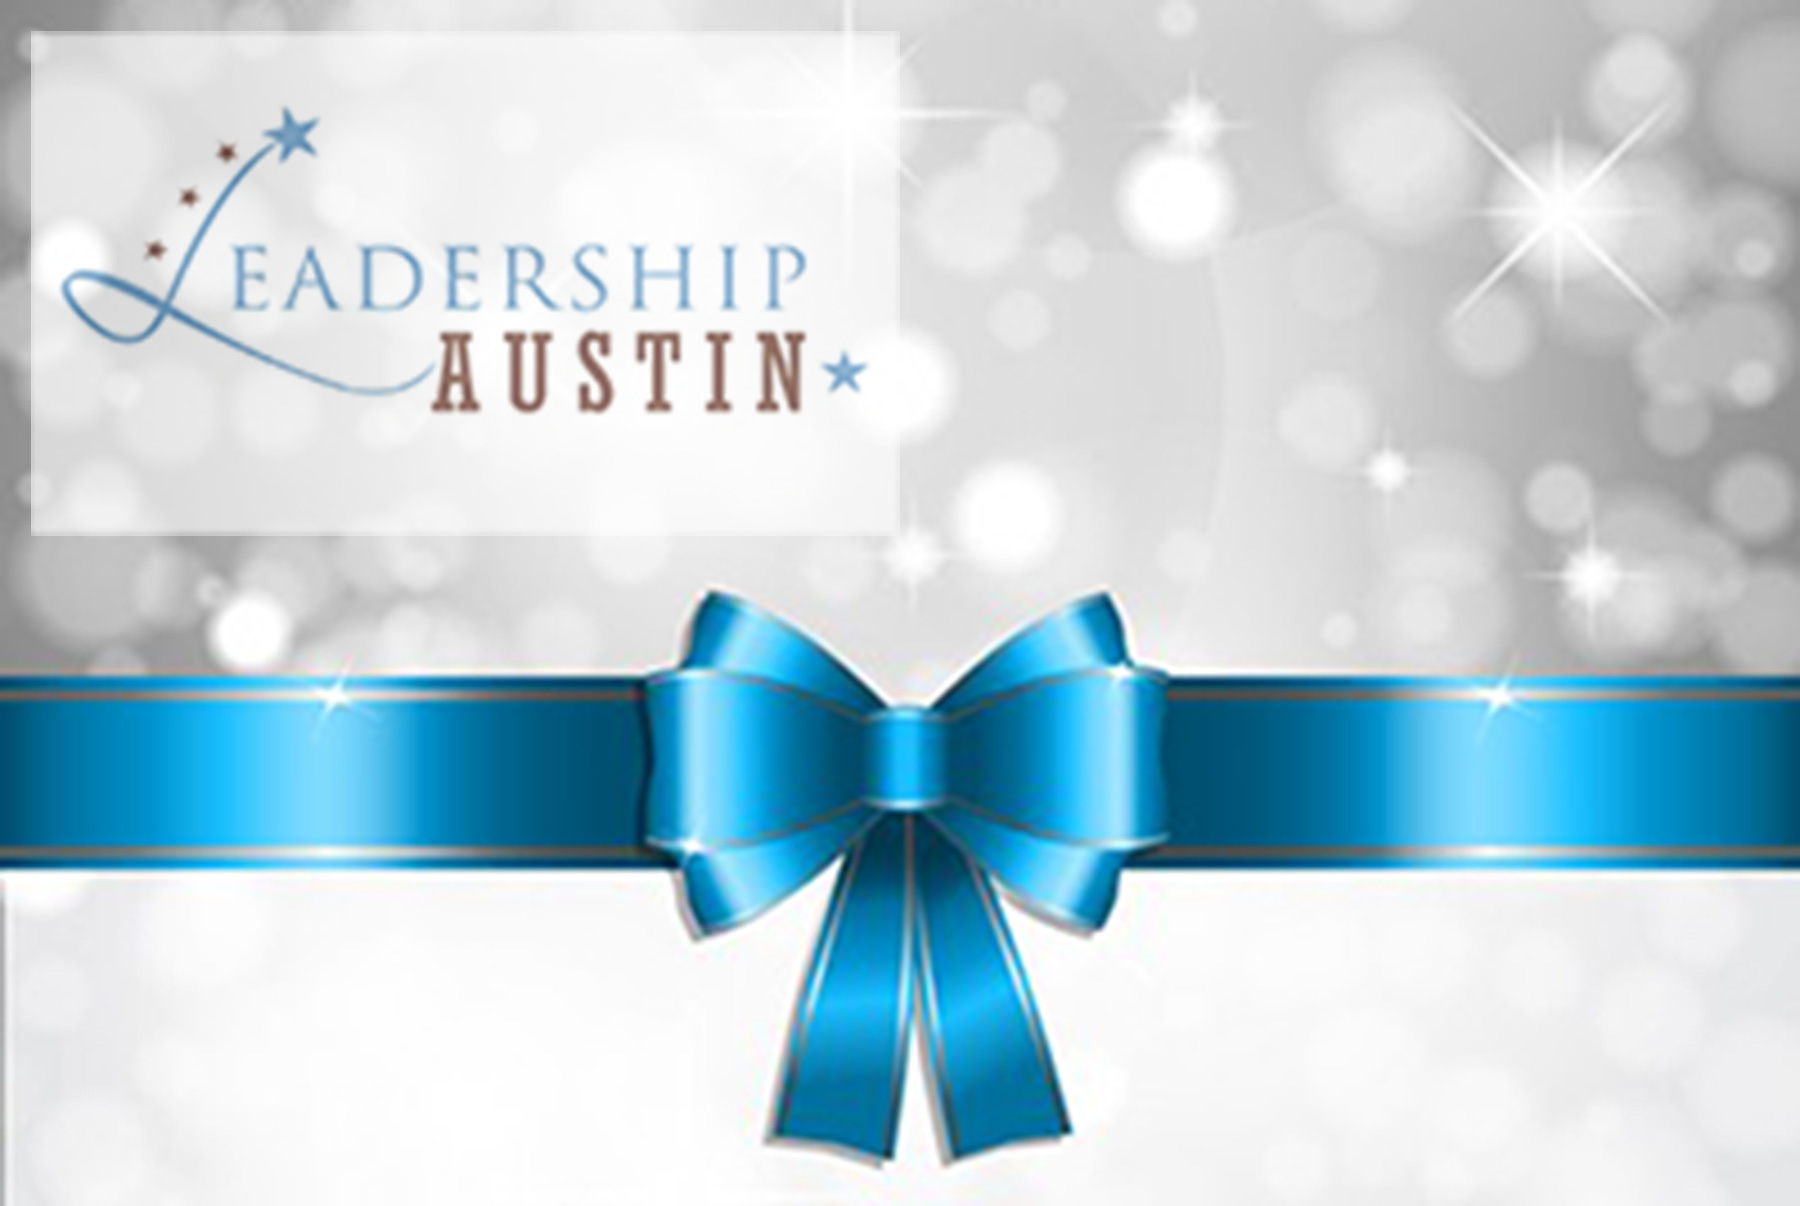 Ring in the Holidays with Leadership Austin